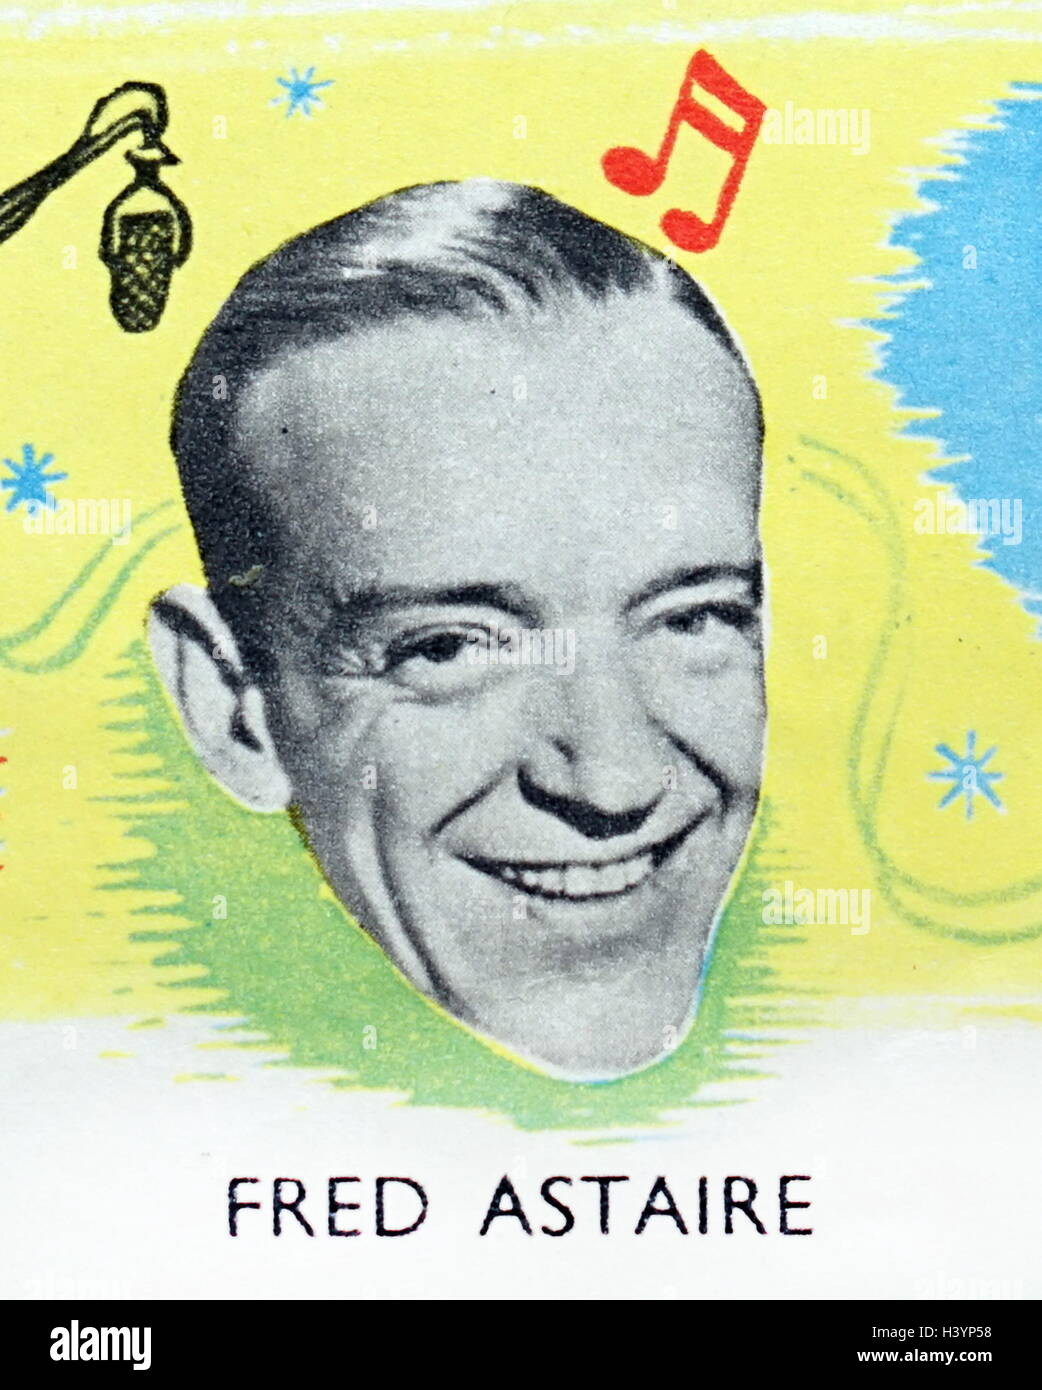 Photograph of Fred Astaire - Stock Image